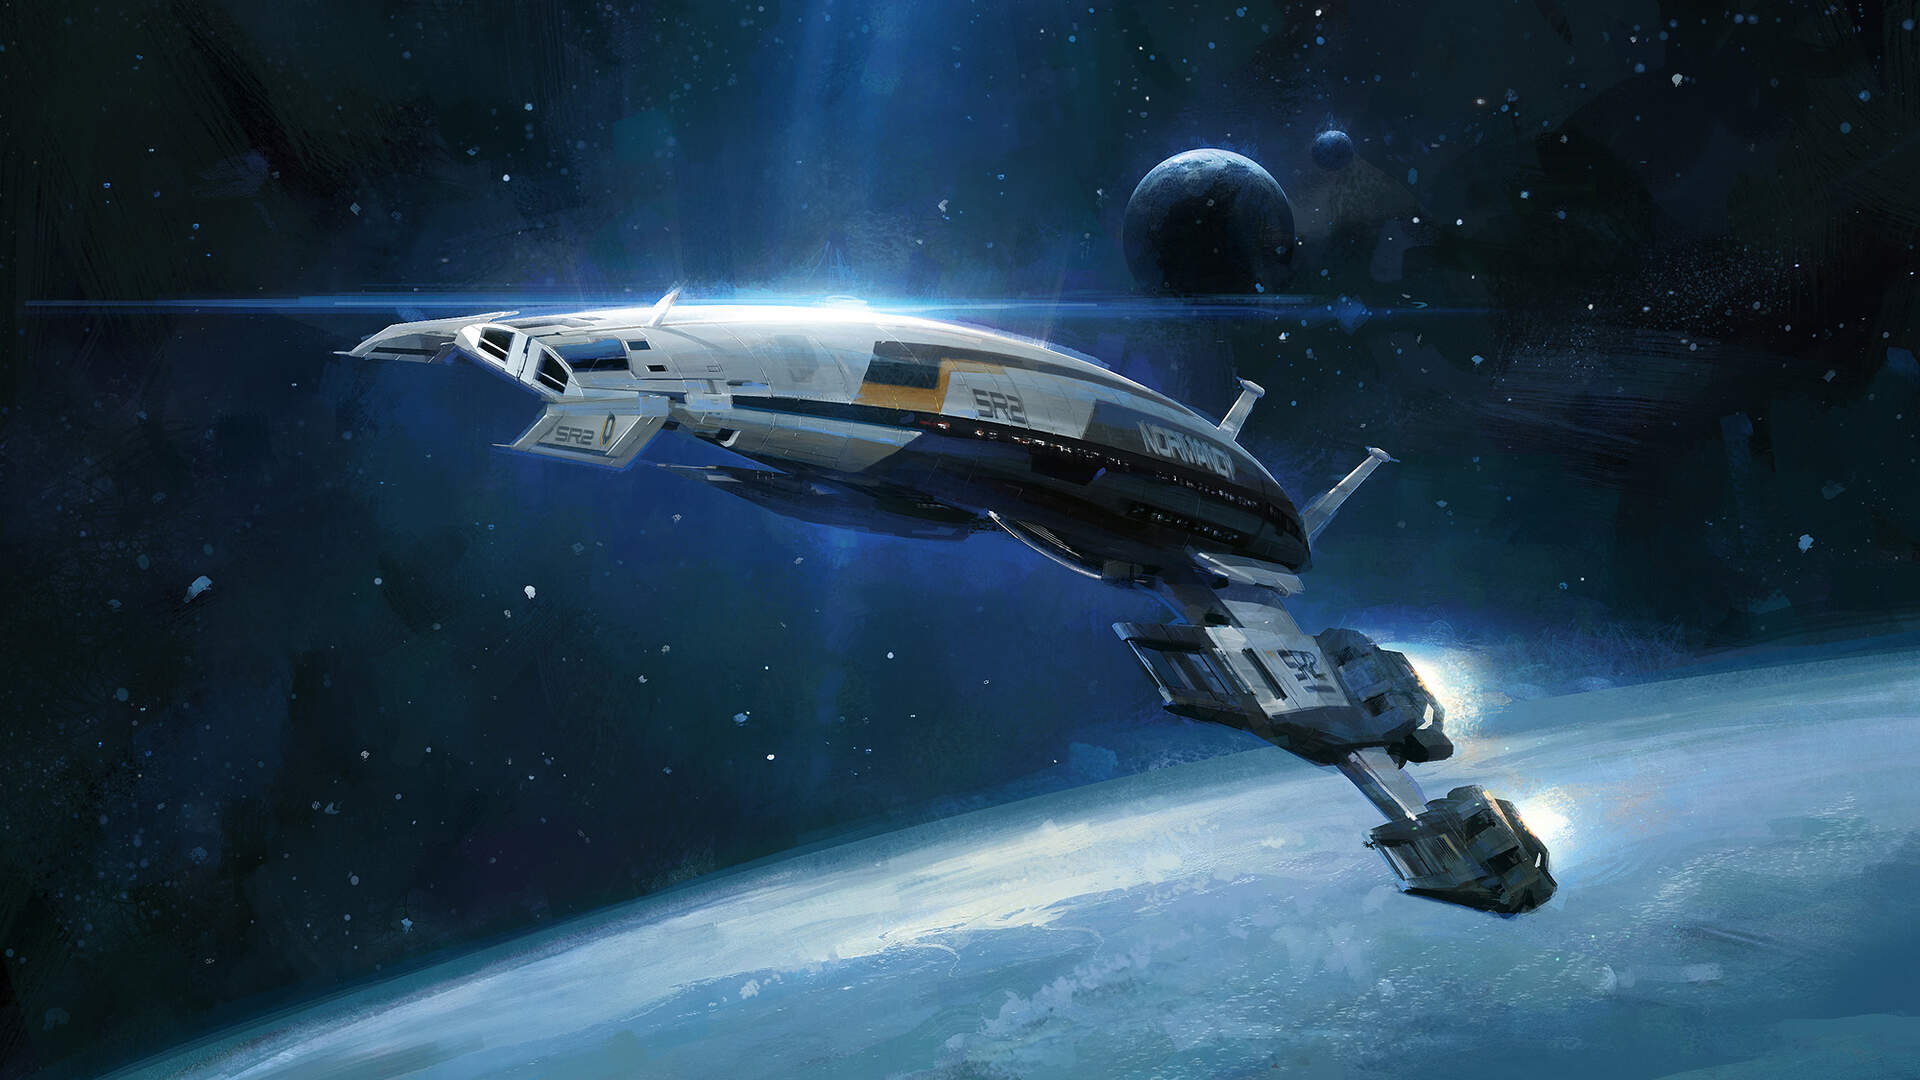 What's The Best Video Game Spaceship?